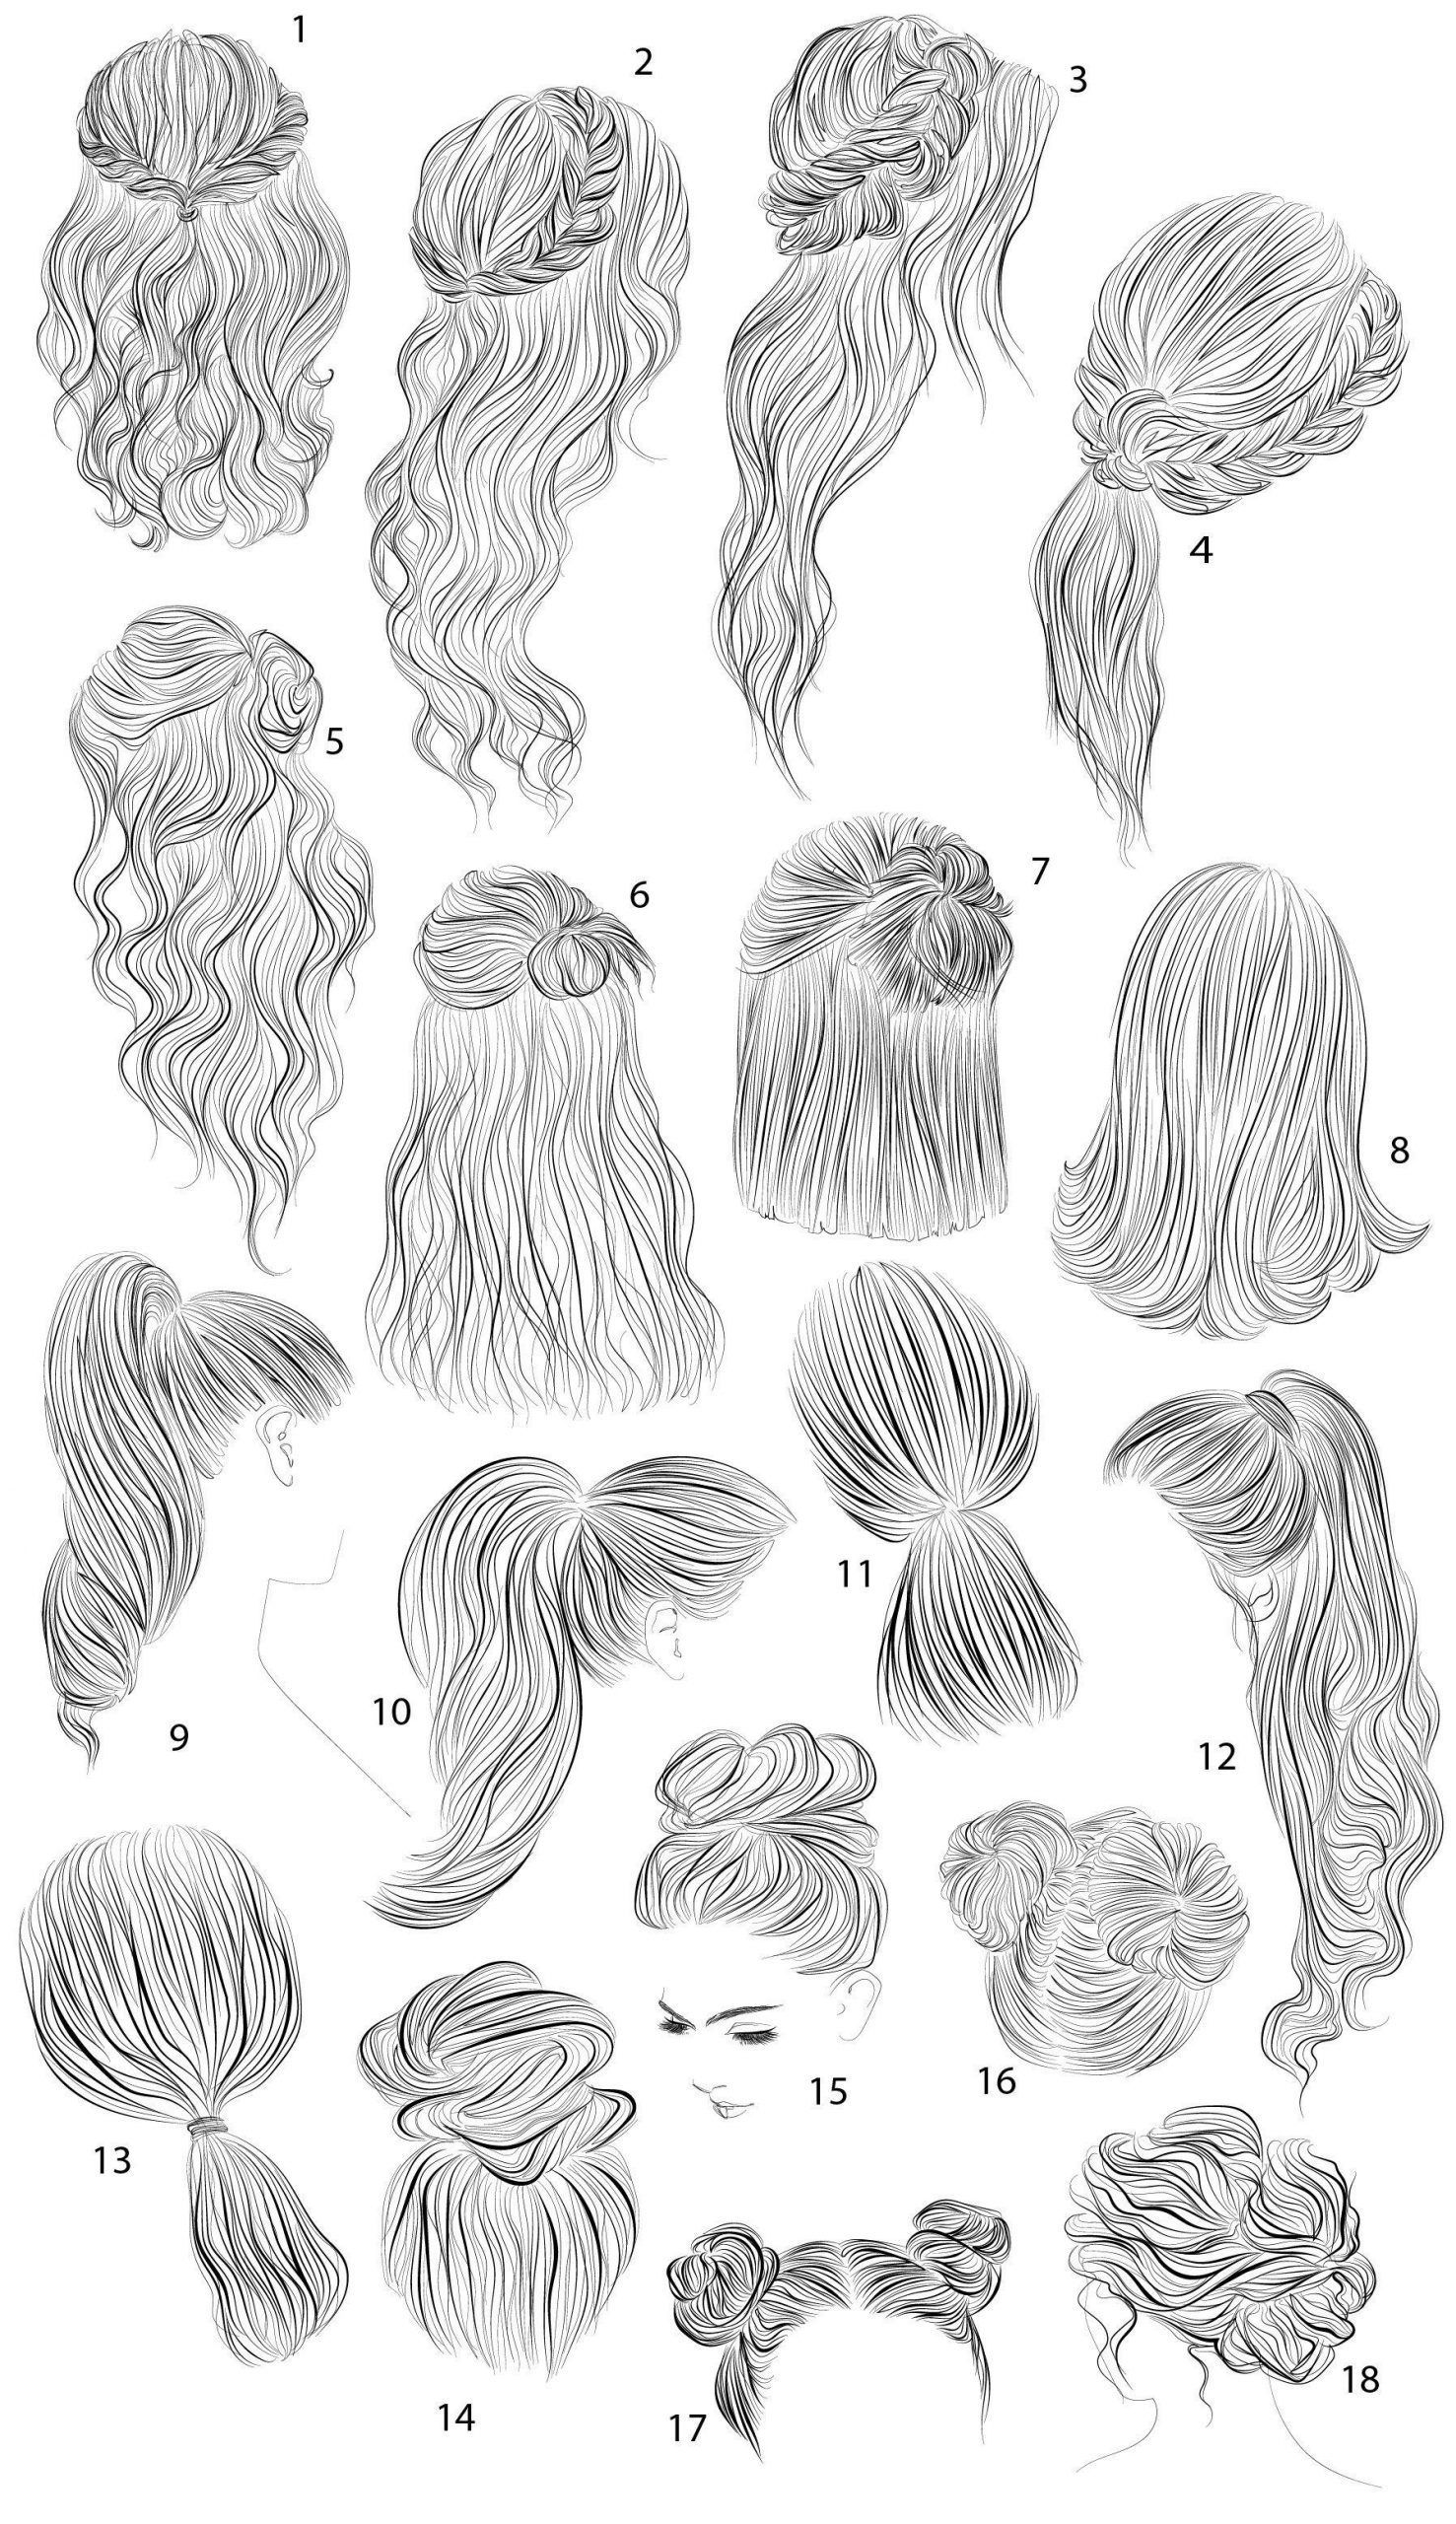 Photo of 18 vector woman hairstyles